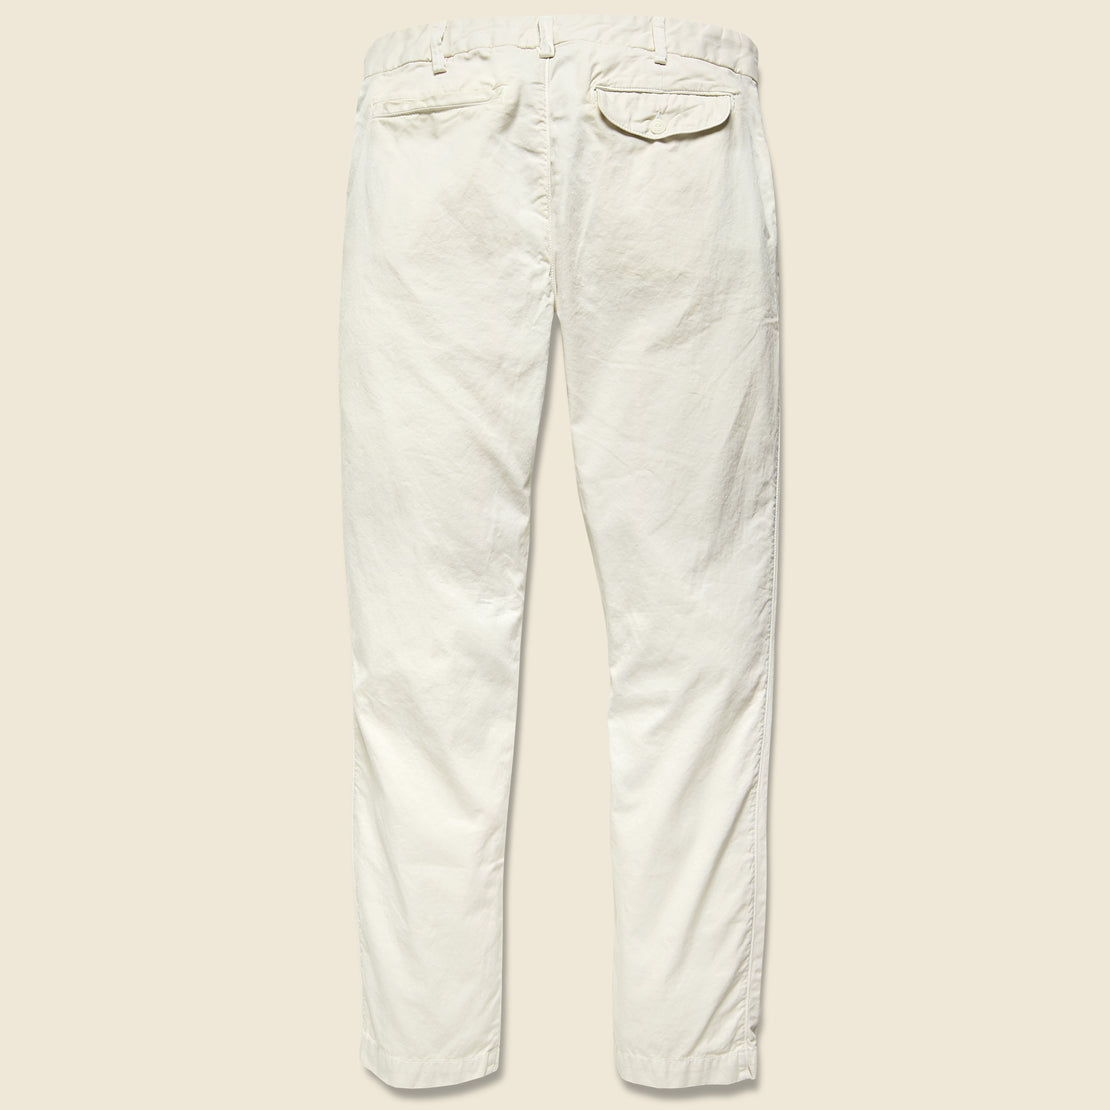 Light Twill Trouser - Stone